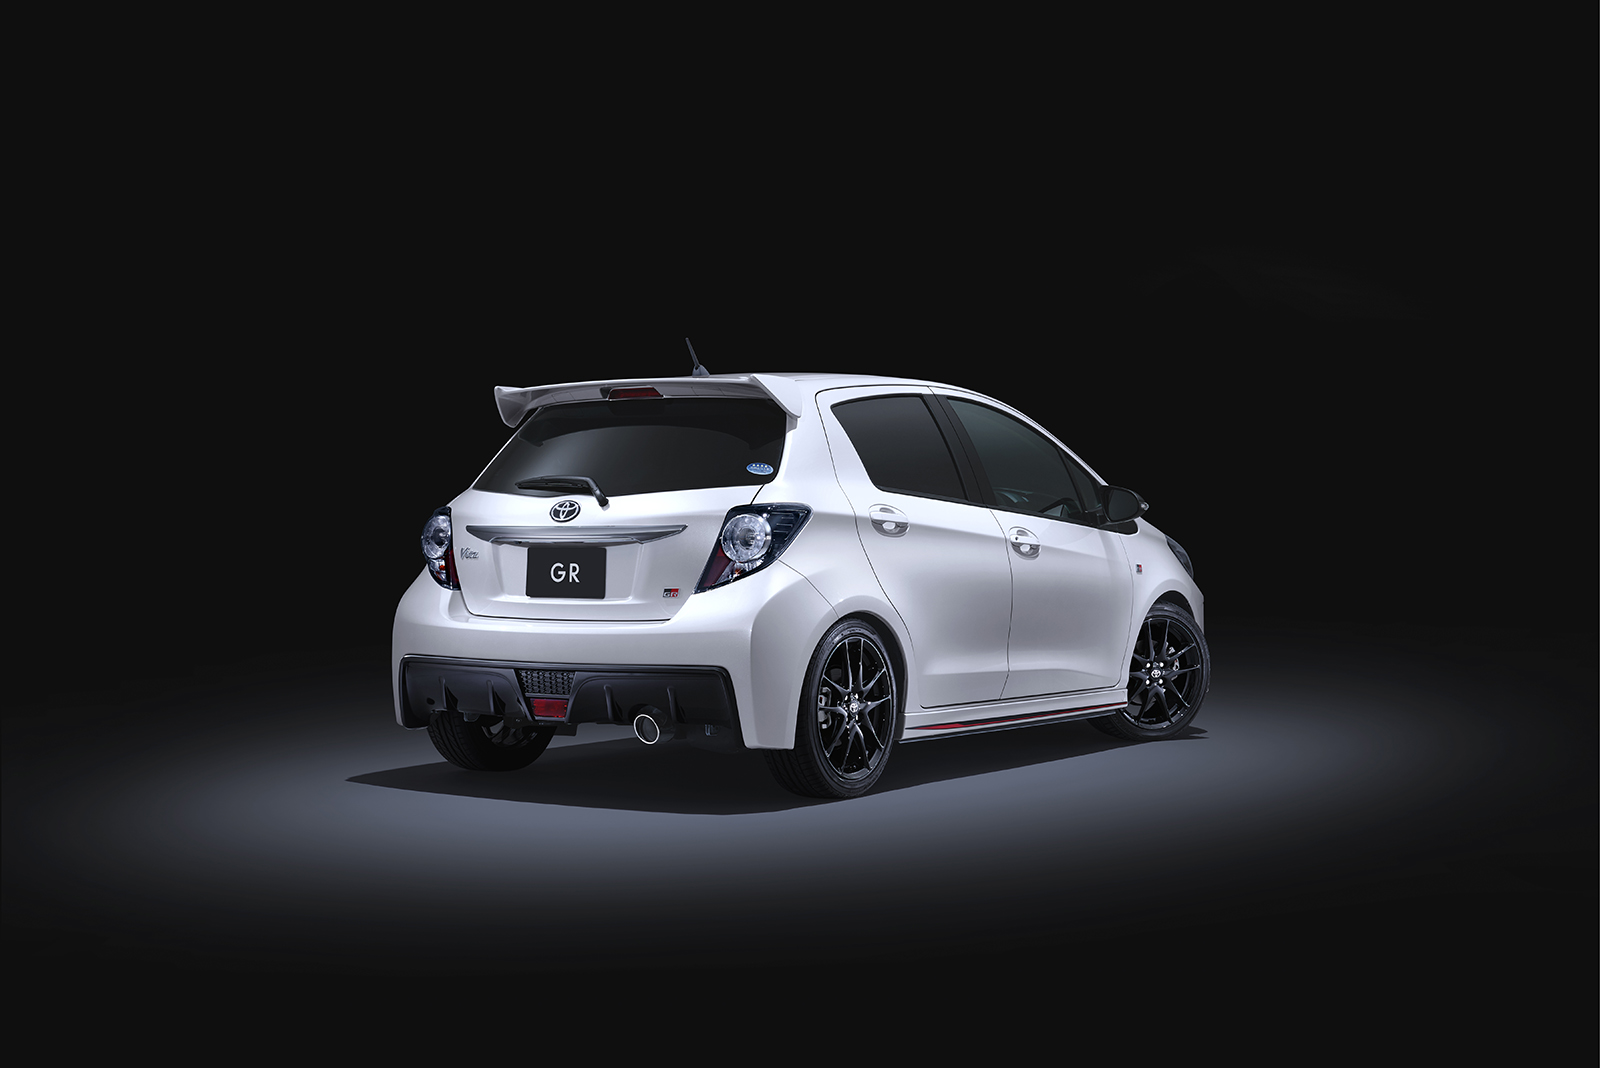 NEWS: Toyota launches new GR performance line | Japanese ...